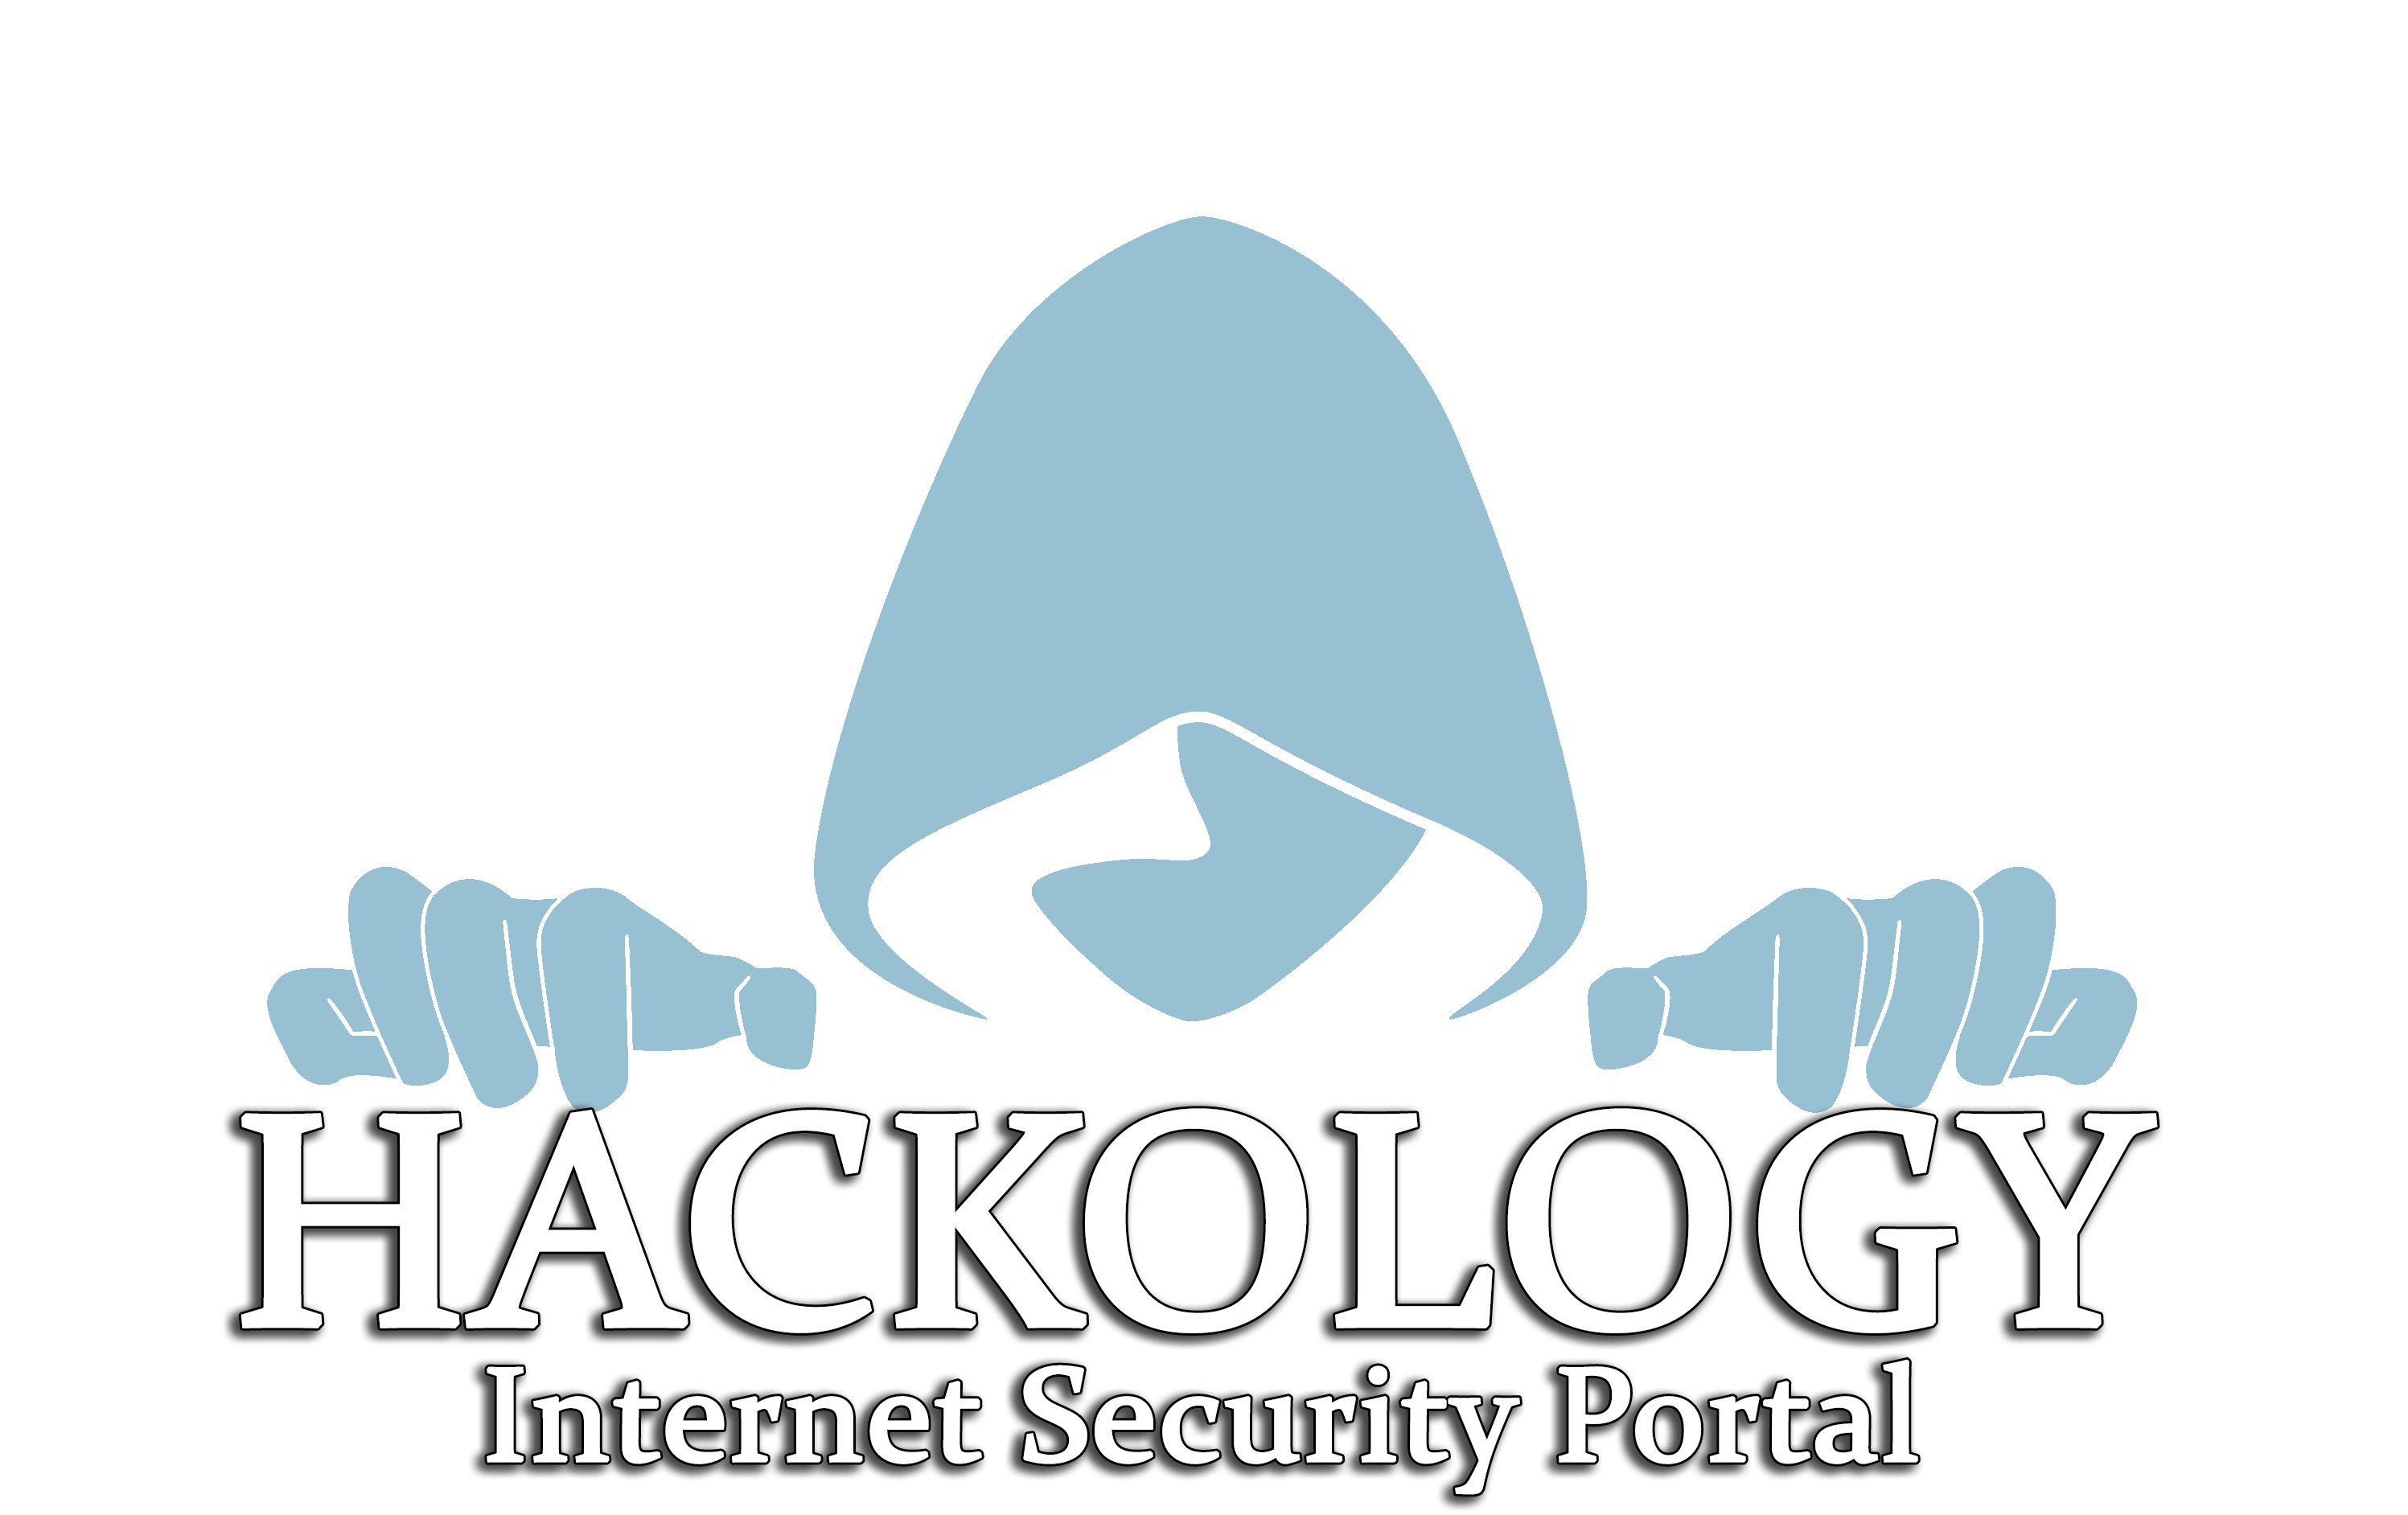 Hackology - Internet Security / Hacking Portfolio